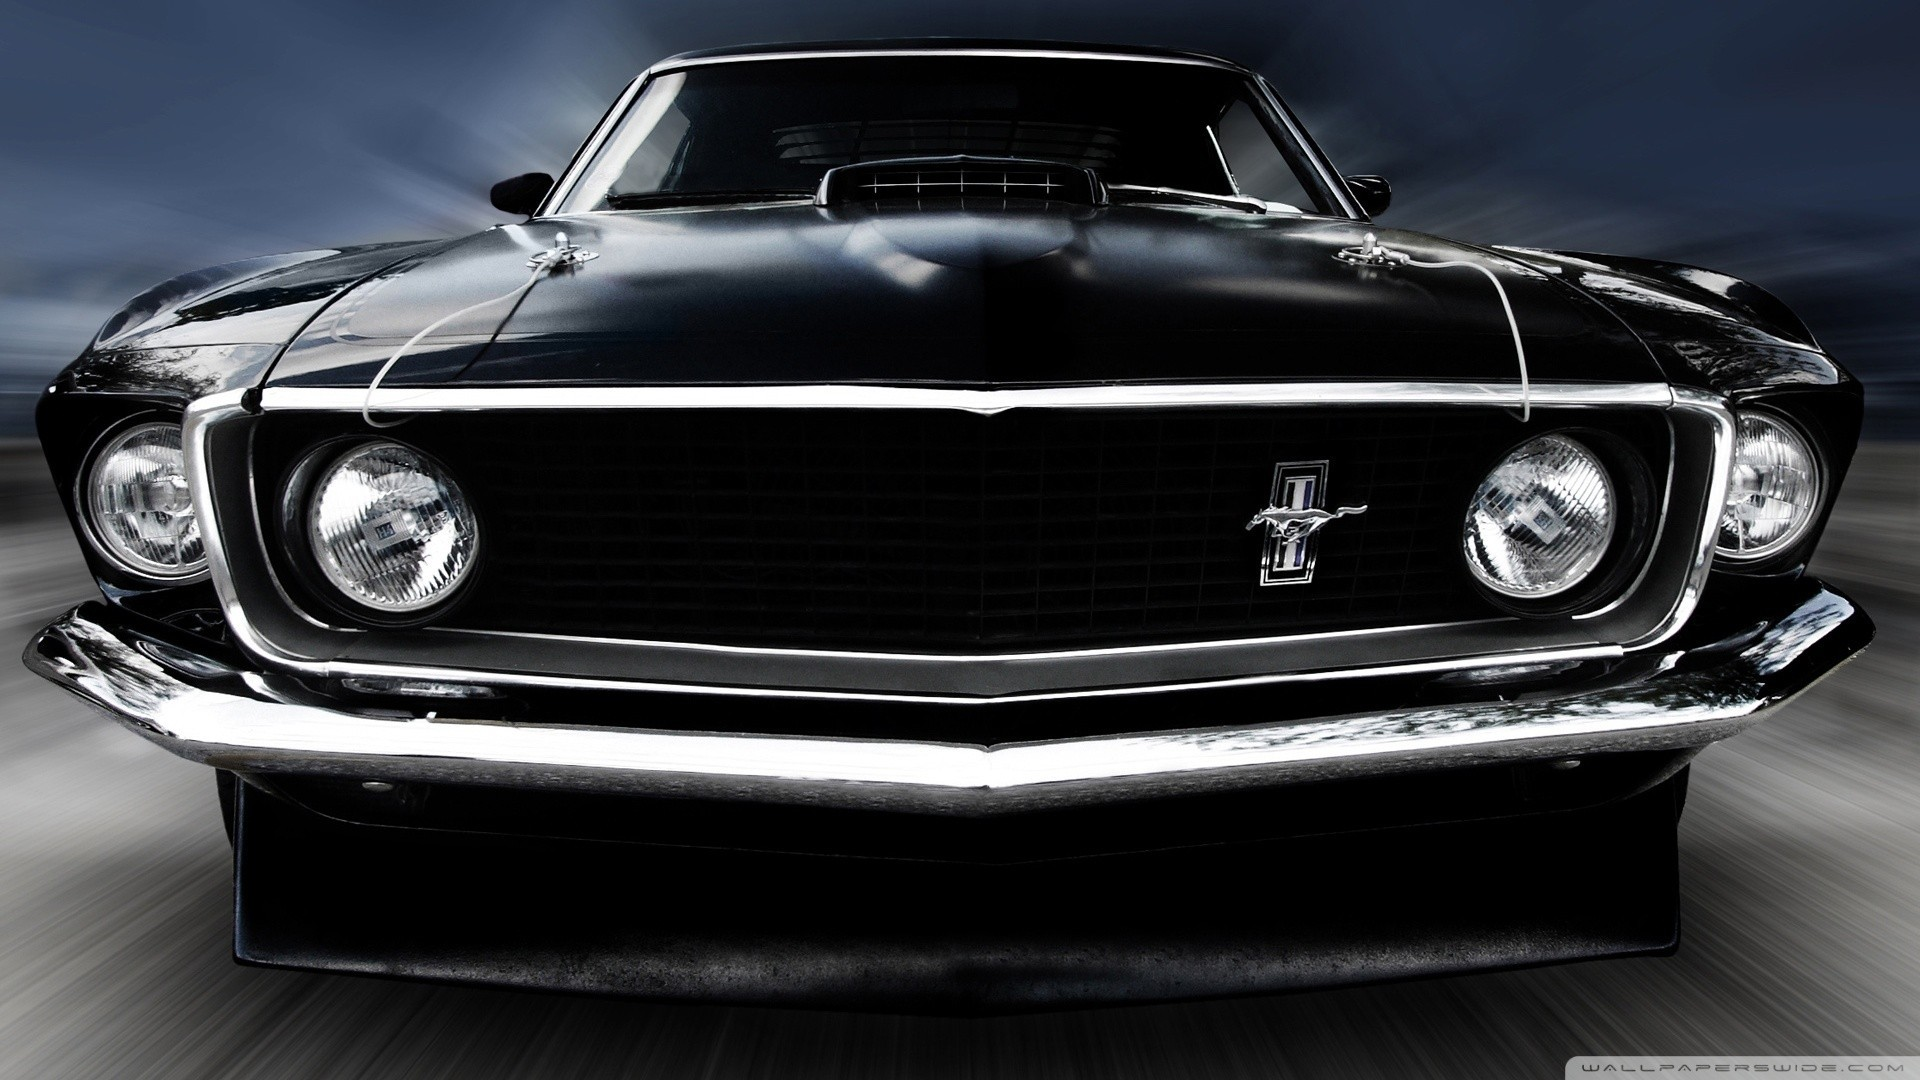 High Resolution American Muscle Car Background Wallpaper Full Size .